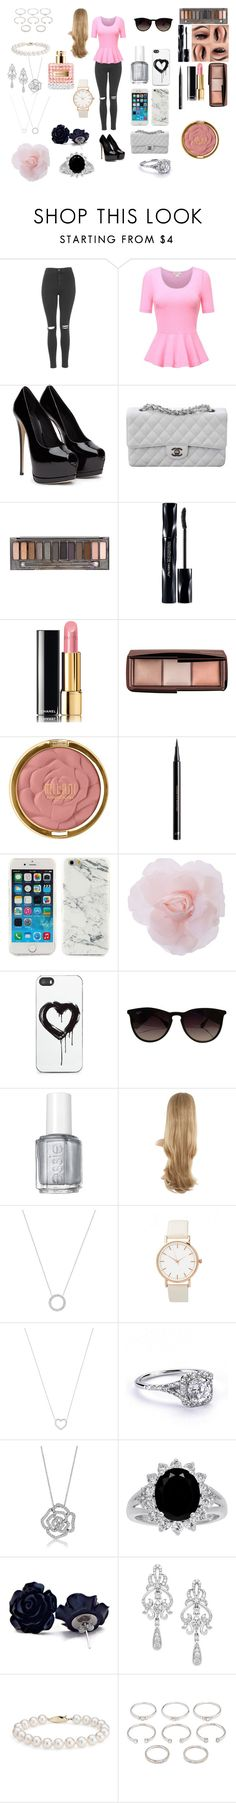 """""""pinky style"""" by xxecmxx on Polyvore featuring mode, Topshop, Chanel, Urban Decay, Shiseido, Hourglass Cosmetics, Milani, H&M, Zero Gravity en Ray-Ban"""